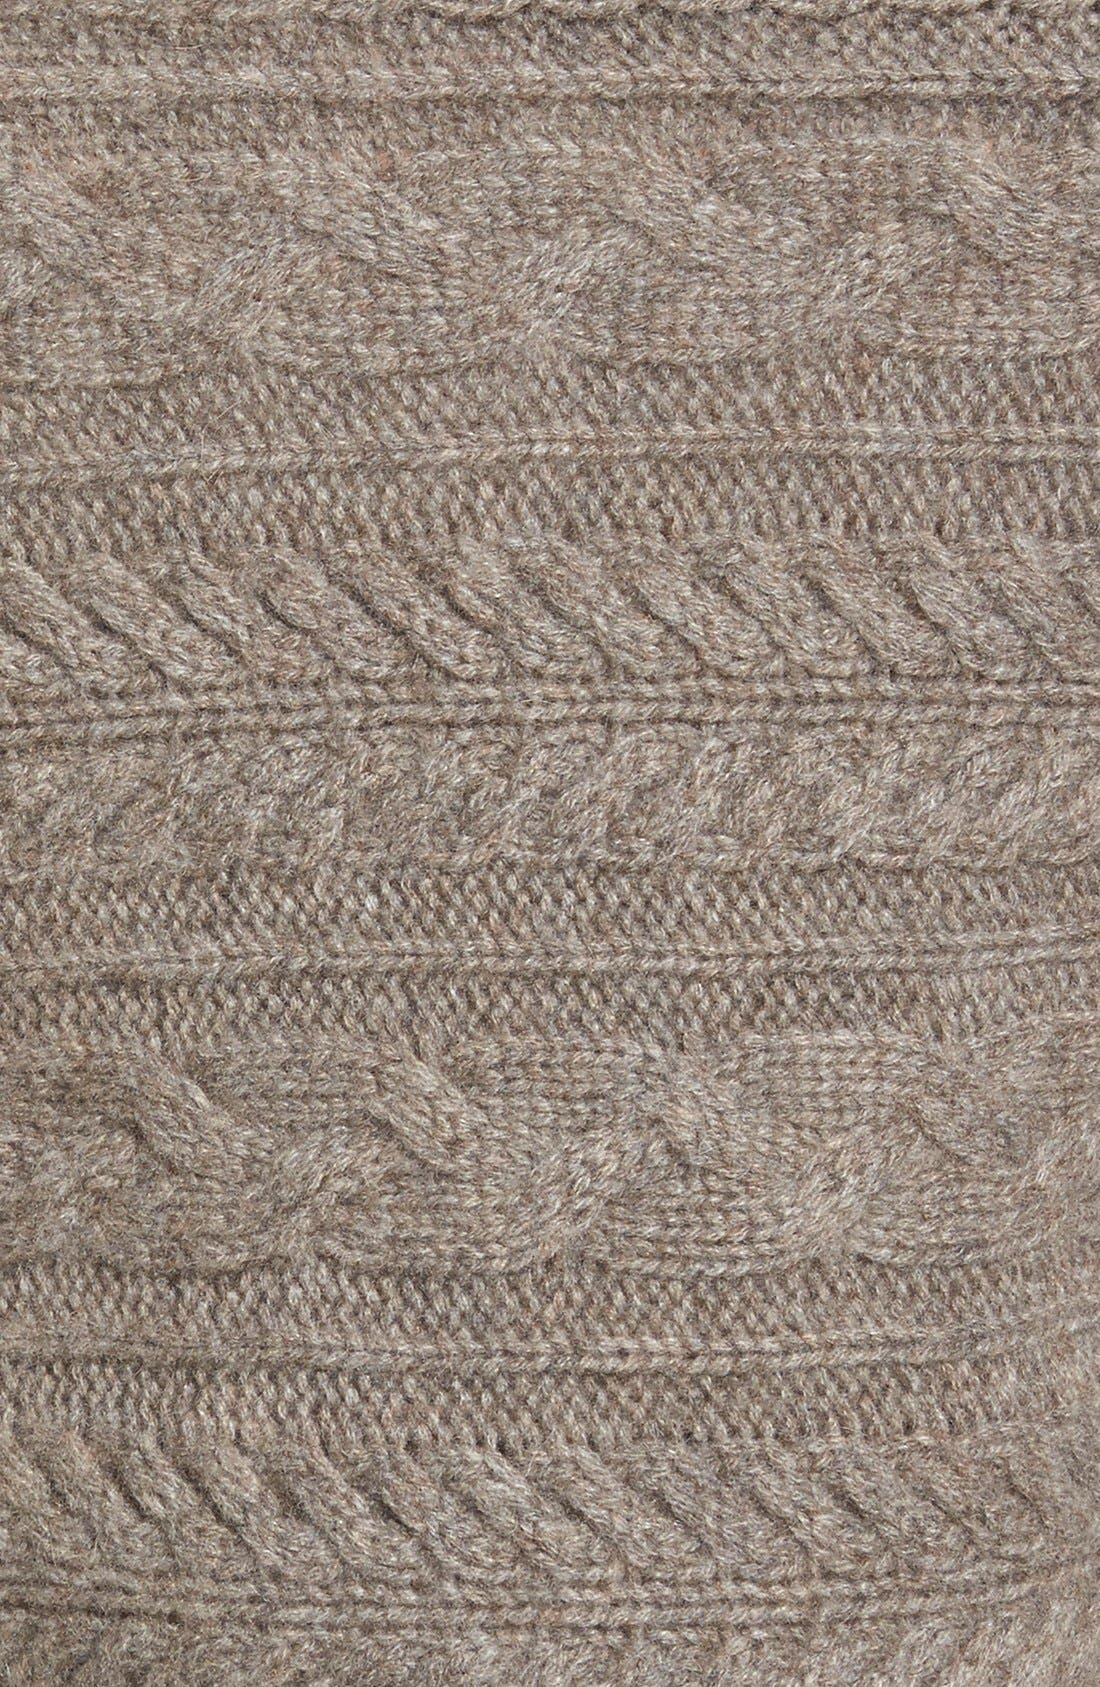 Alternate Image 2  - James Perse Cashmere Infinity Scarf